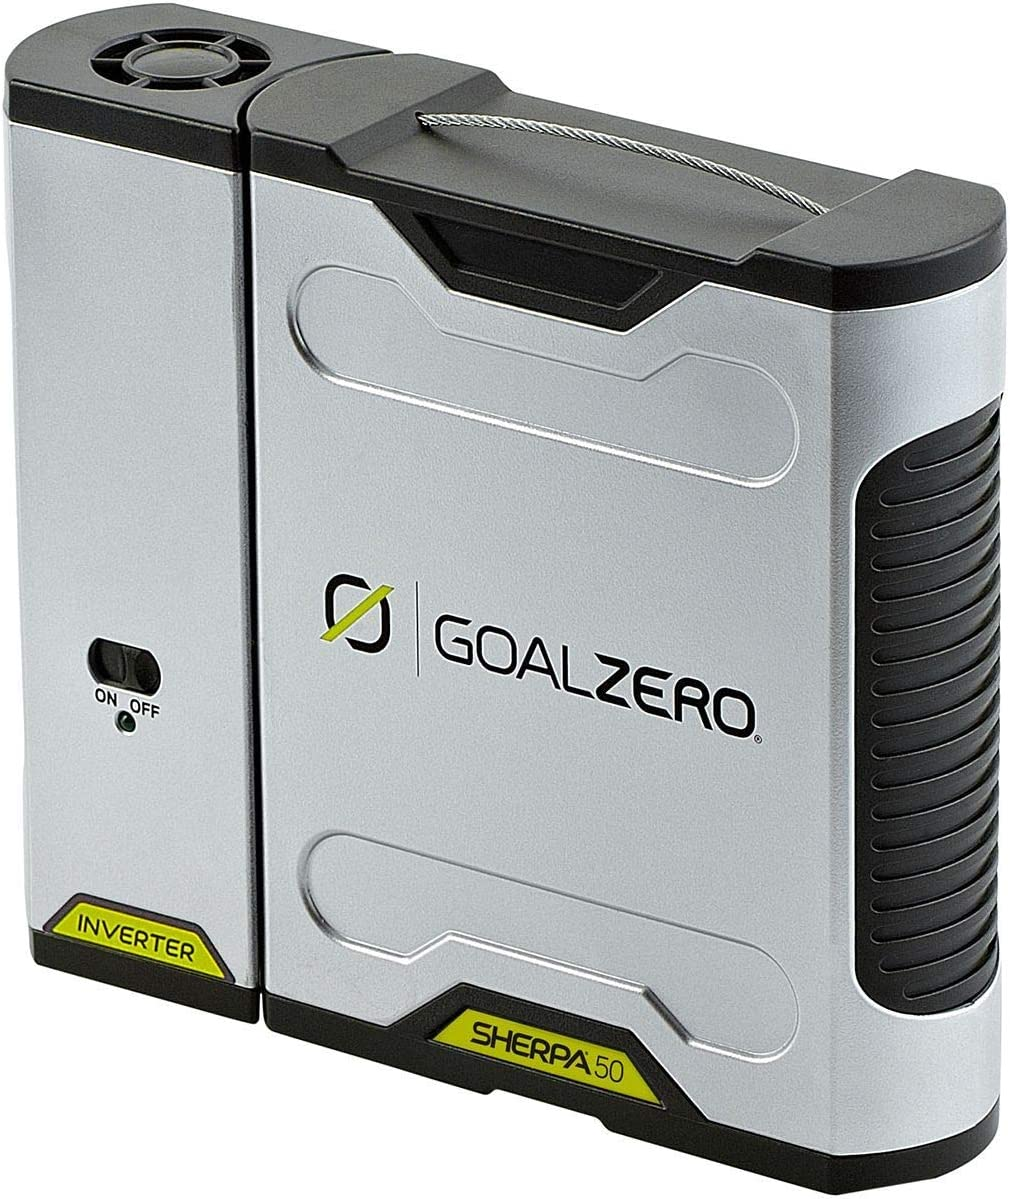 Goal Zero Sherpa 50 Inverter Without Solar Panel One Color, One Size